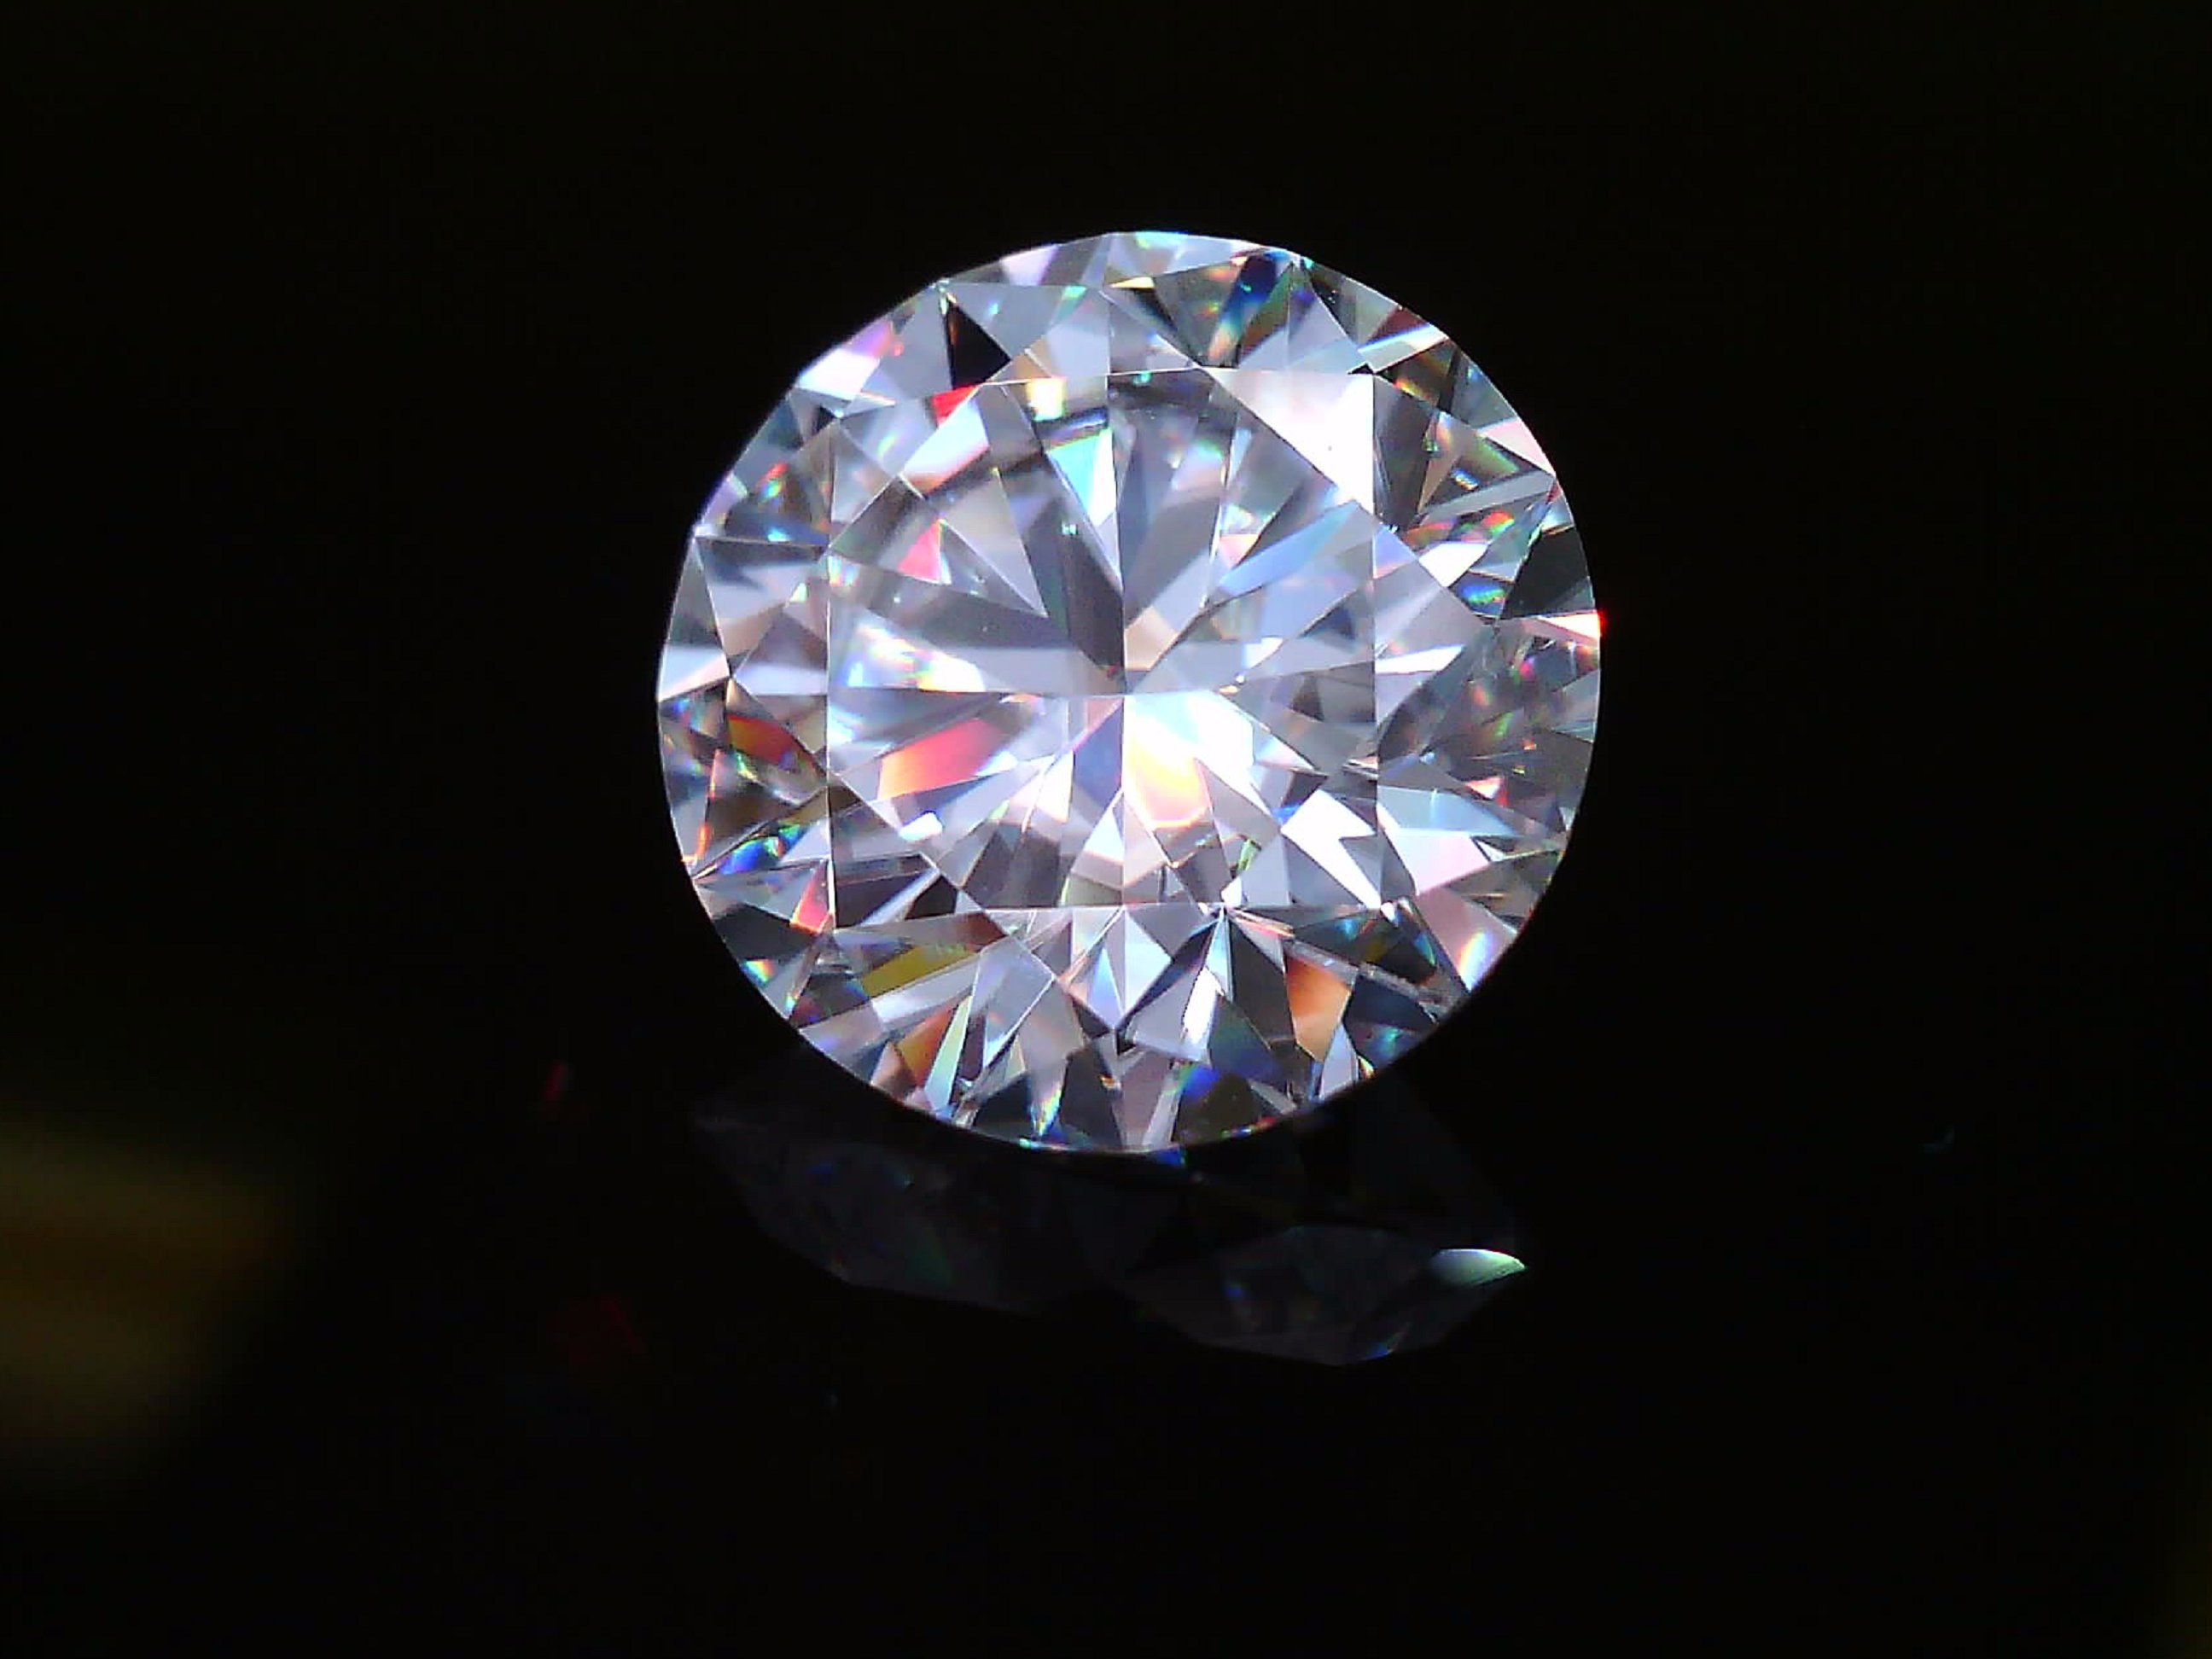 Moissanite on Black Background